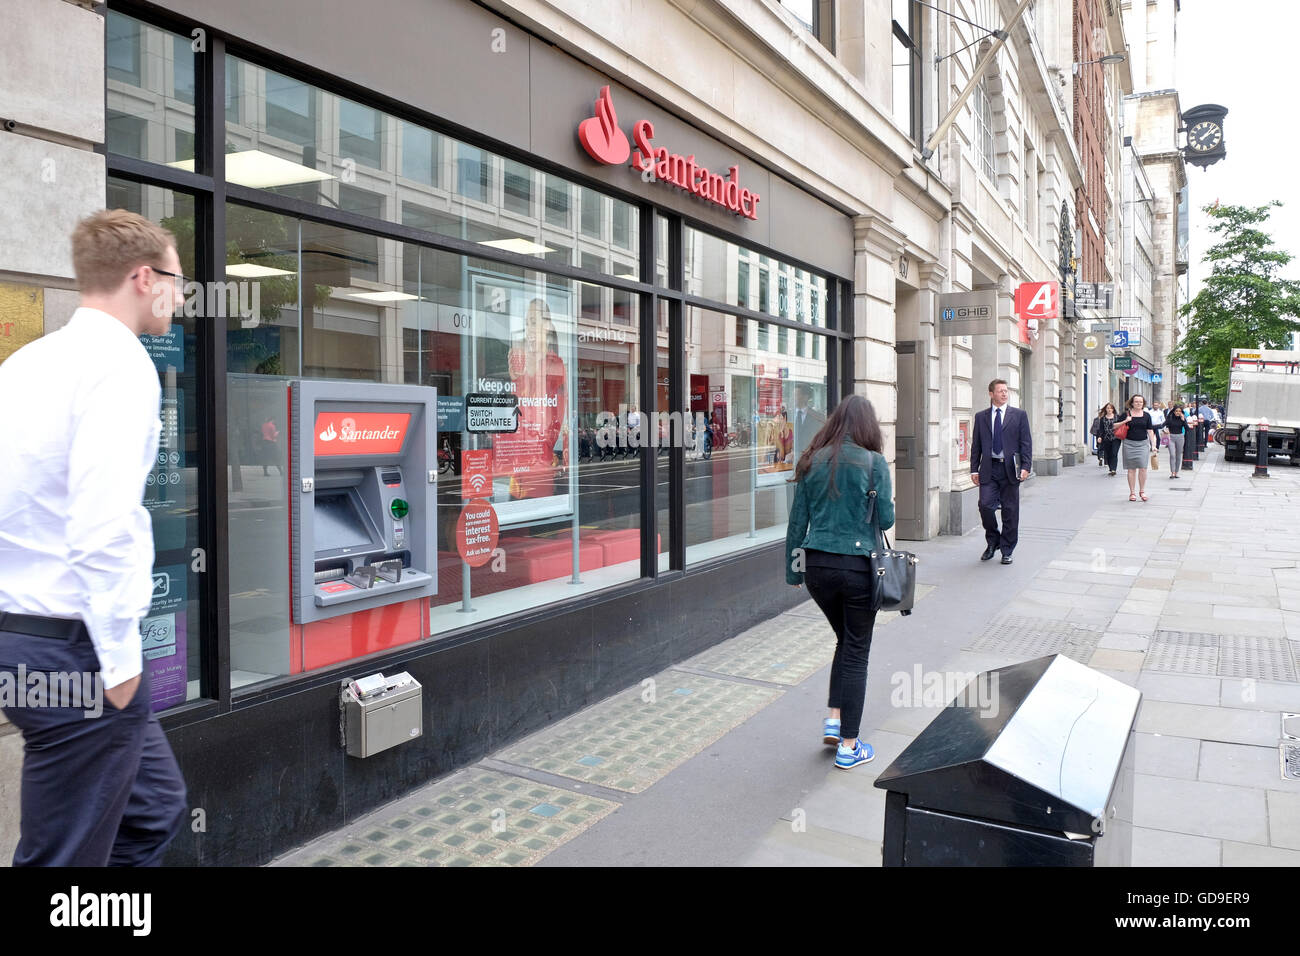 Santander a UK Bank cash point ATM and retail banking outlet in London's CBD - Stock Image